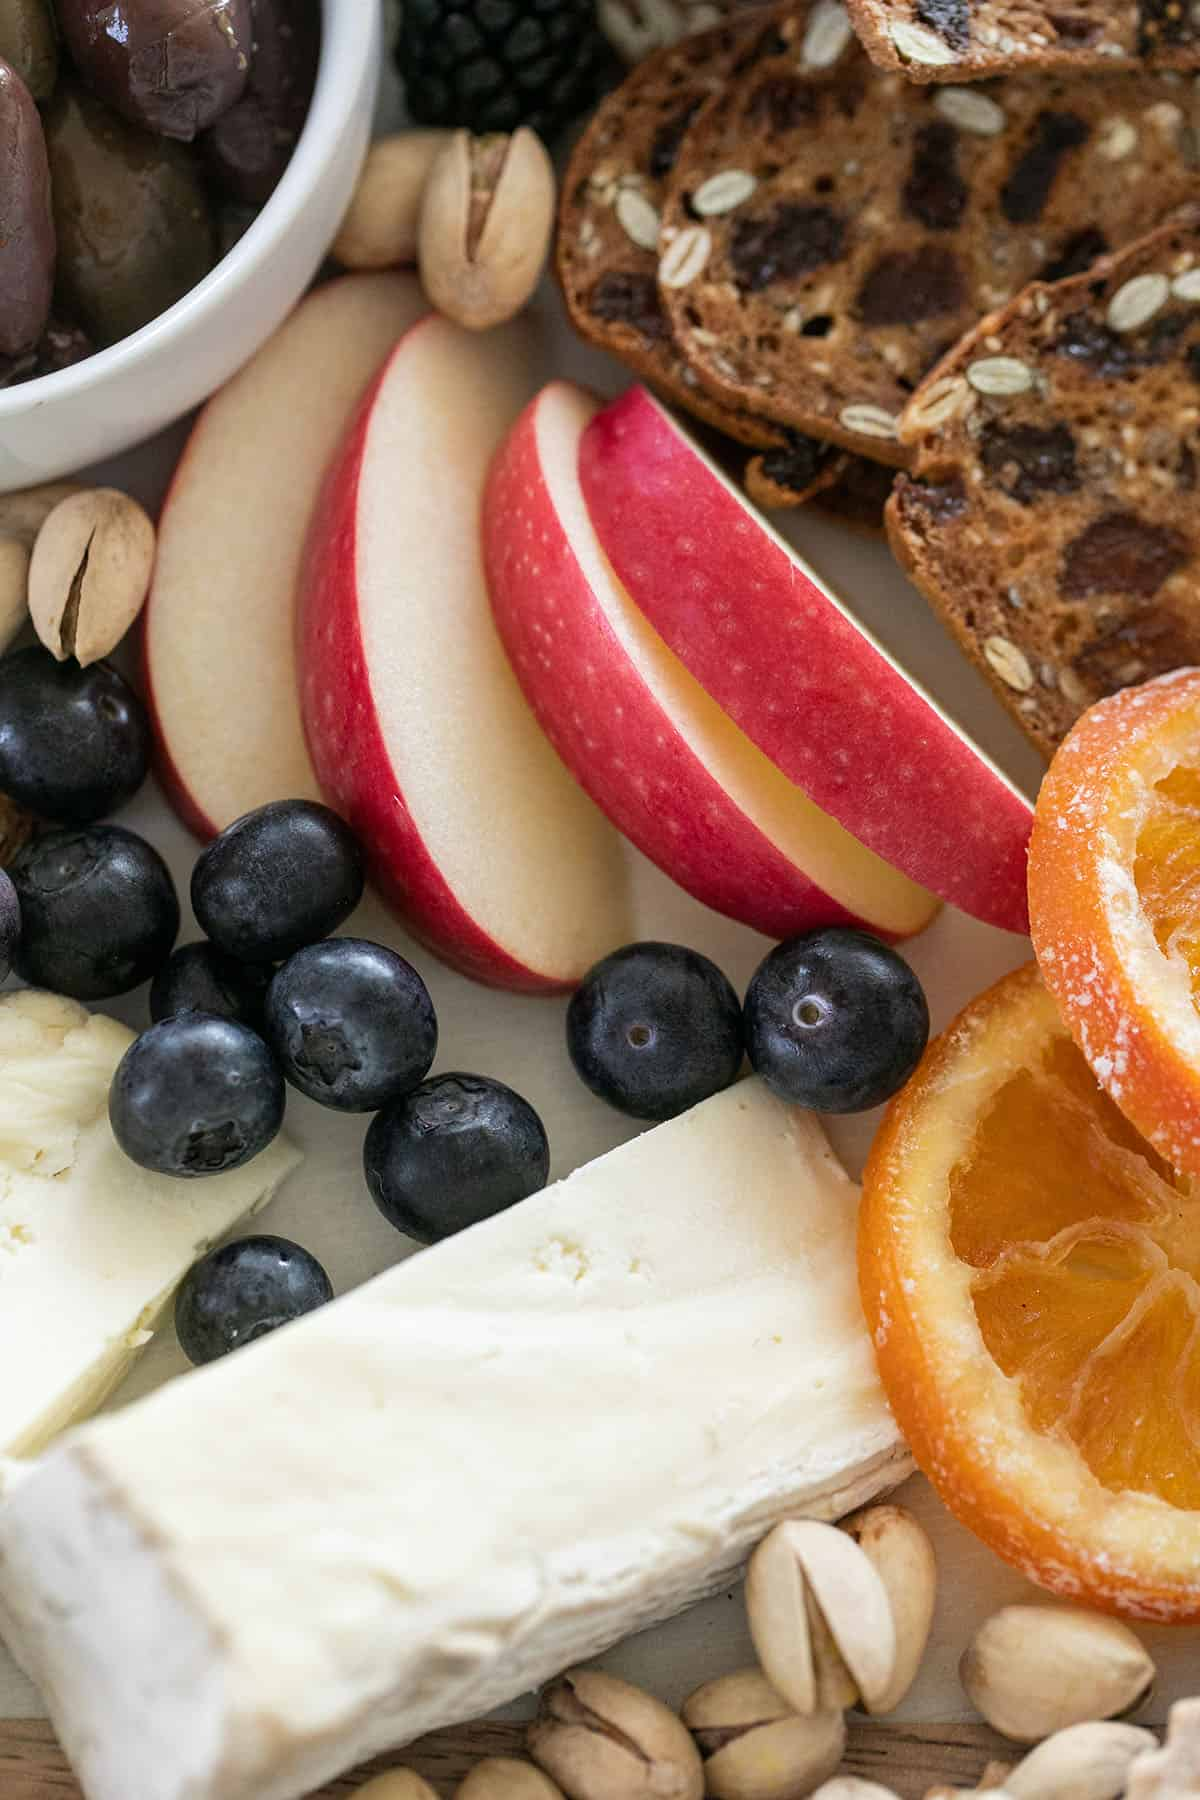 fruit on a cheese platter